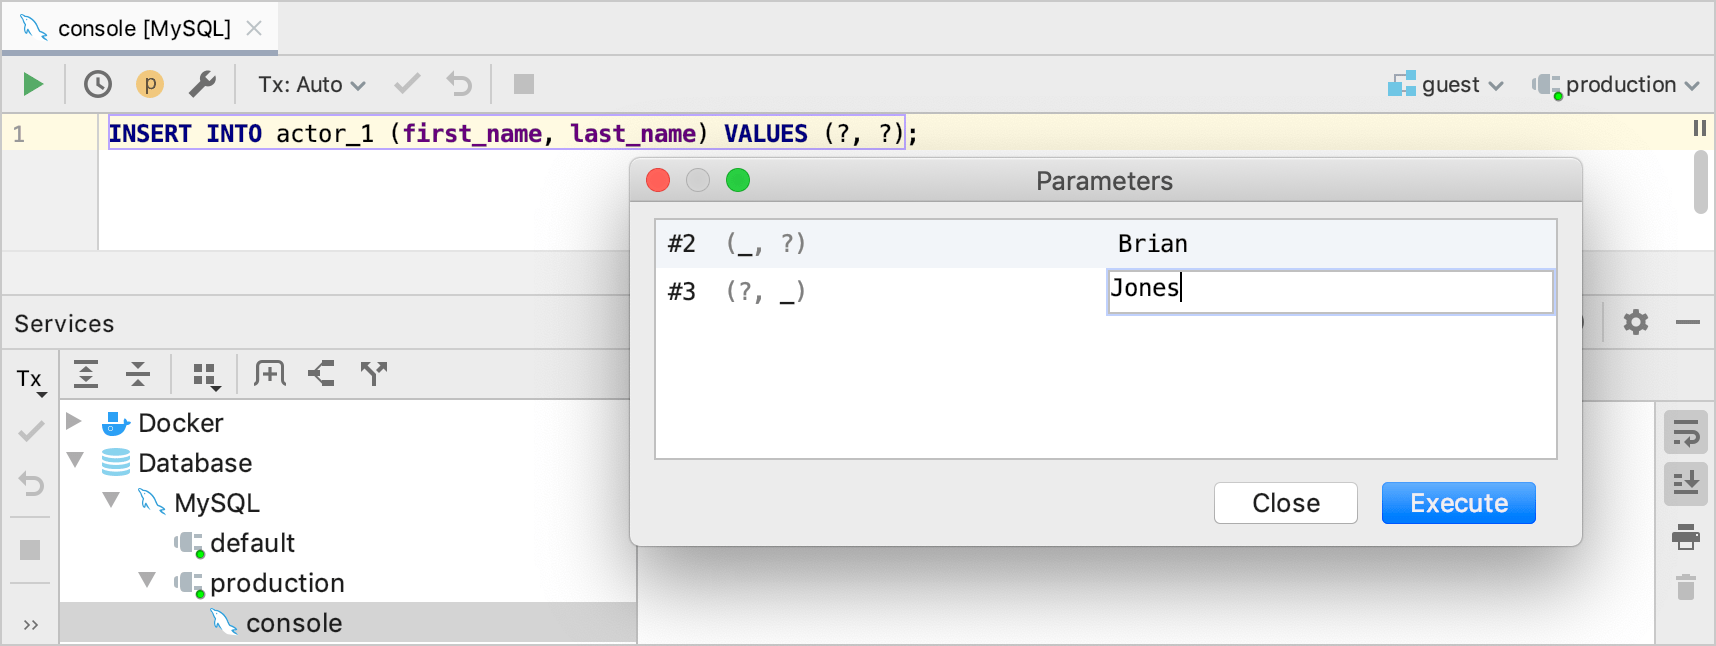 Run a statement with parameters